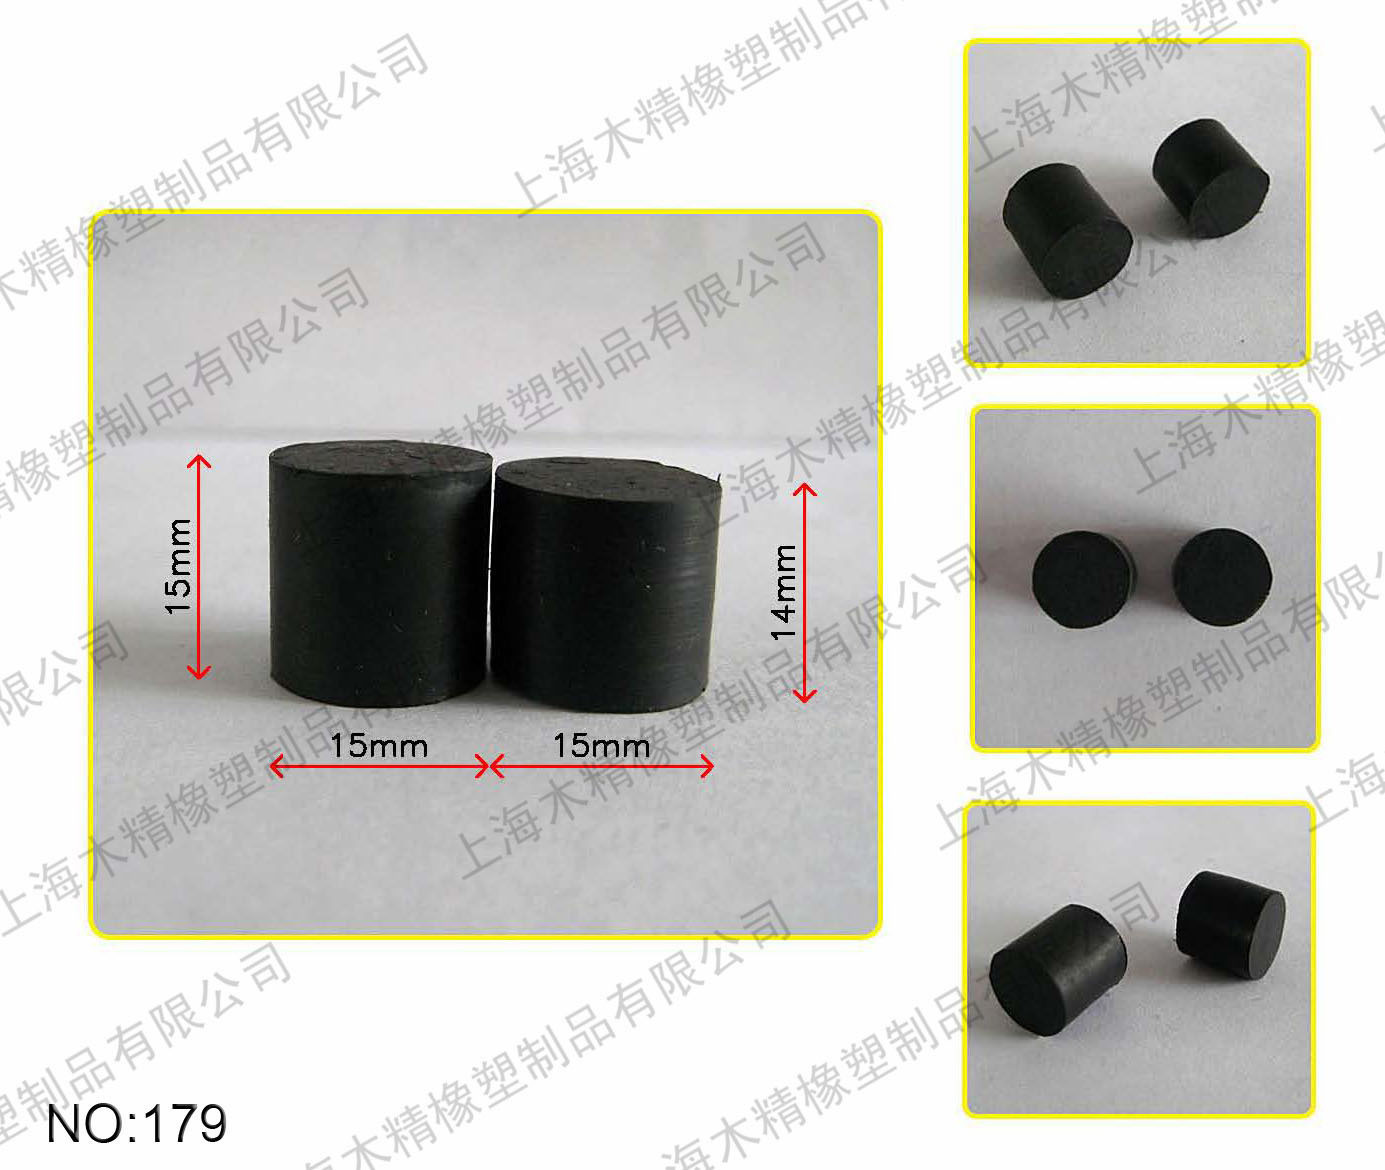 Rubber stopper, rubber stopper, rubber backing diameter 15 15mm high solid rubber cylinder